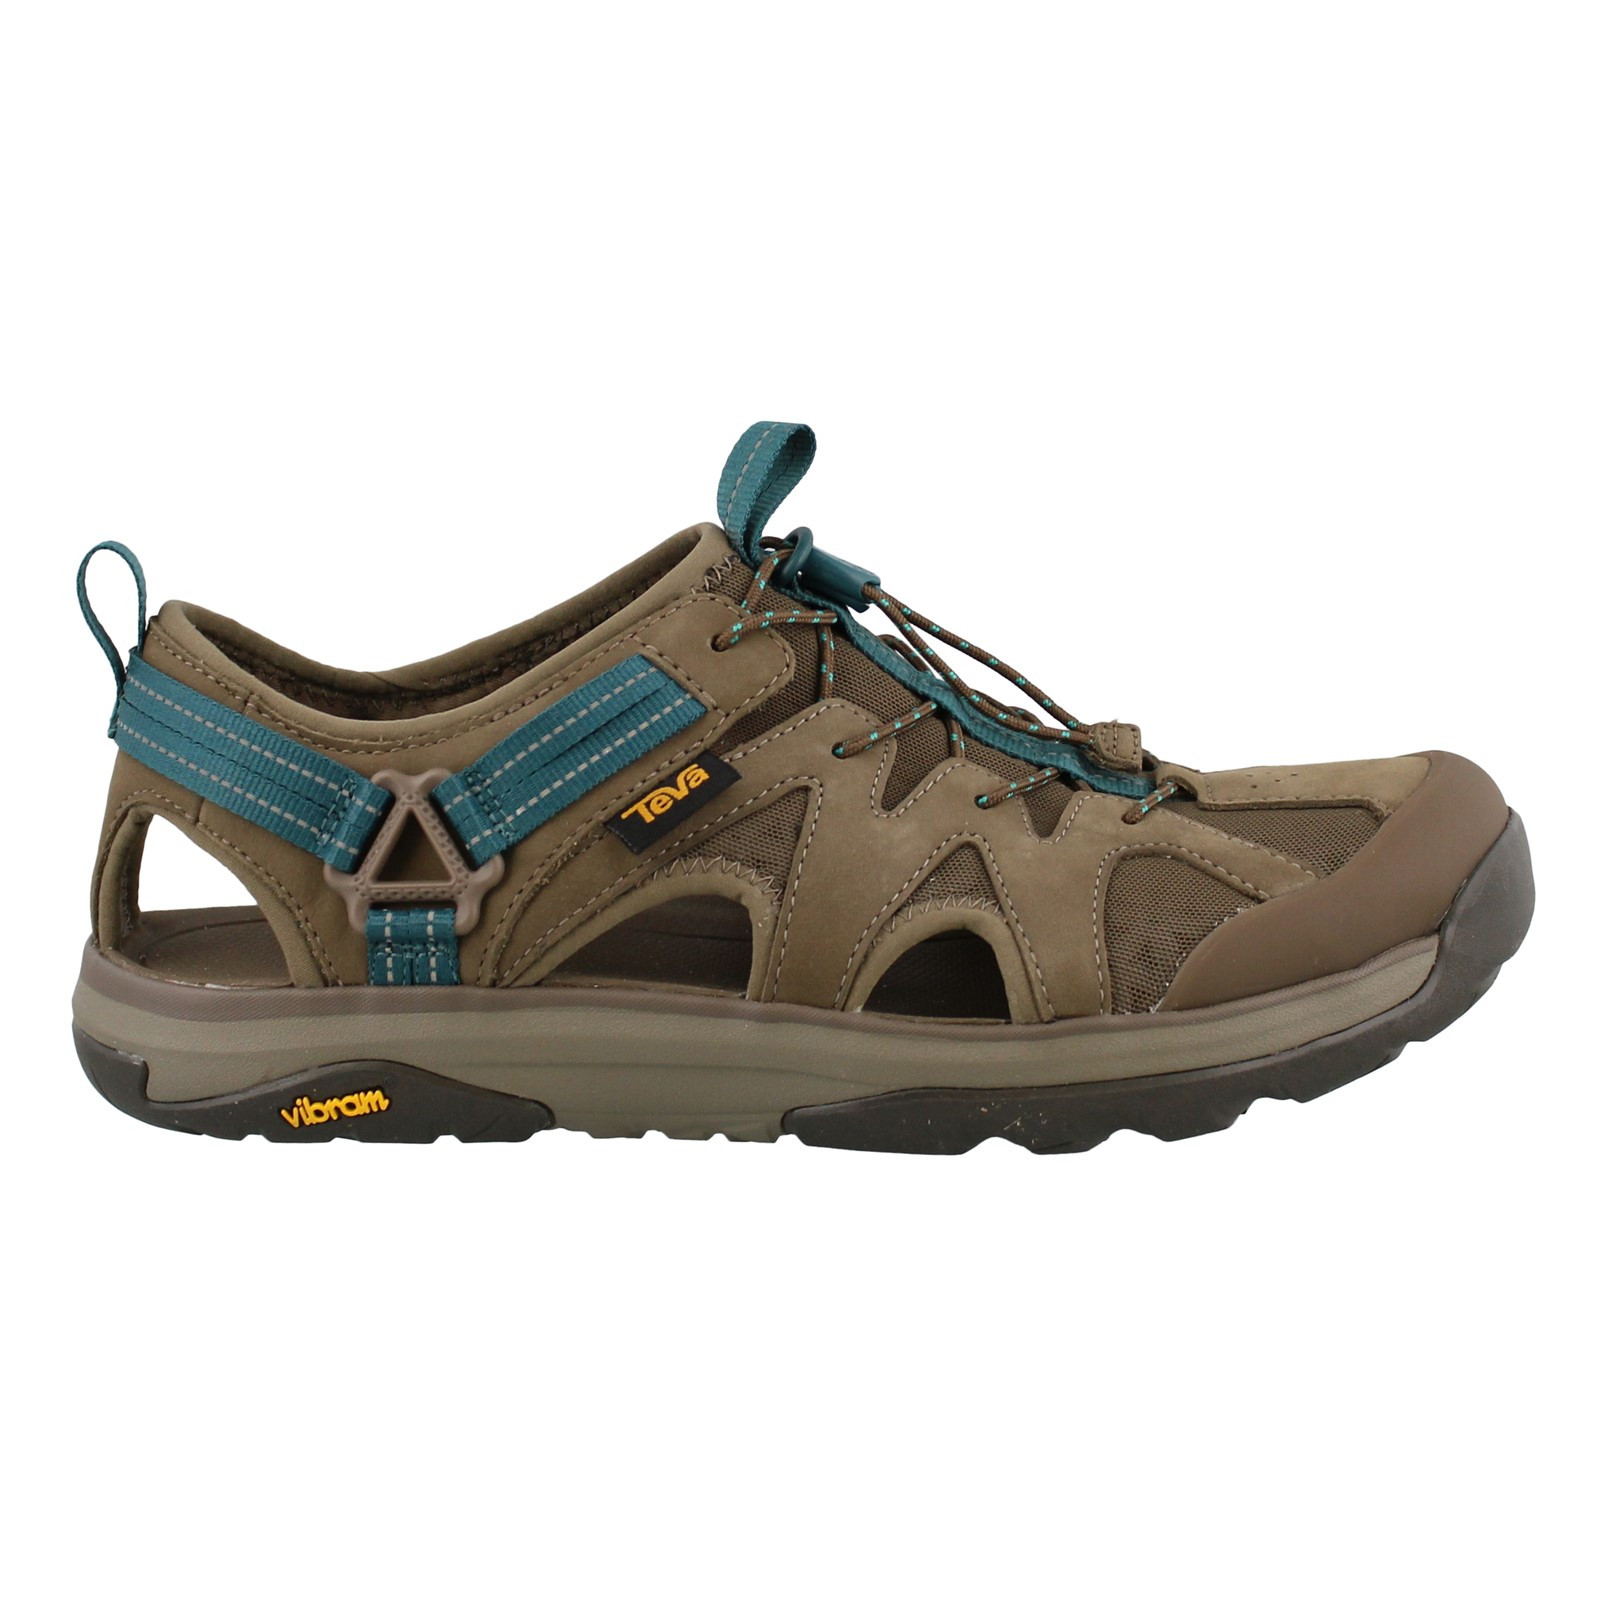 Damens's Teva, Active Terra Float Active Teva, Fisherman Sandales   Peltz Schuhes abd330